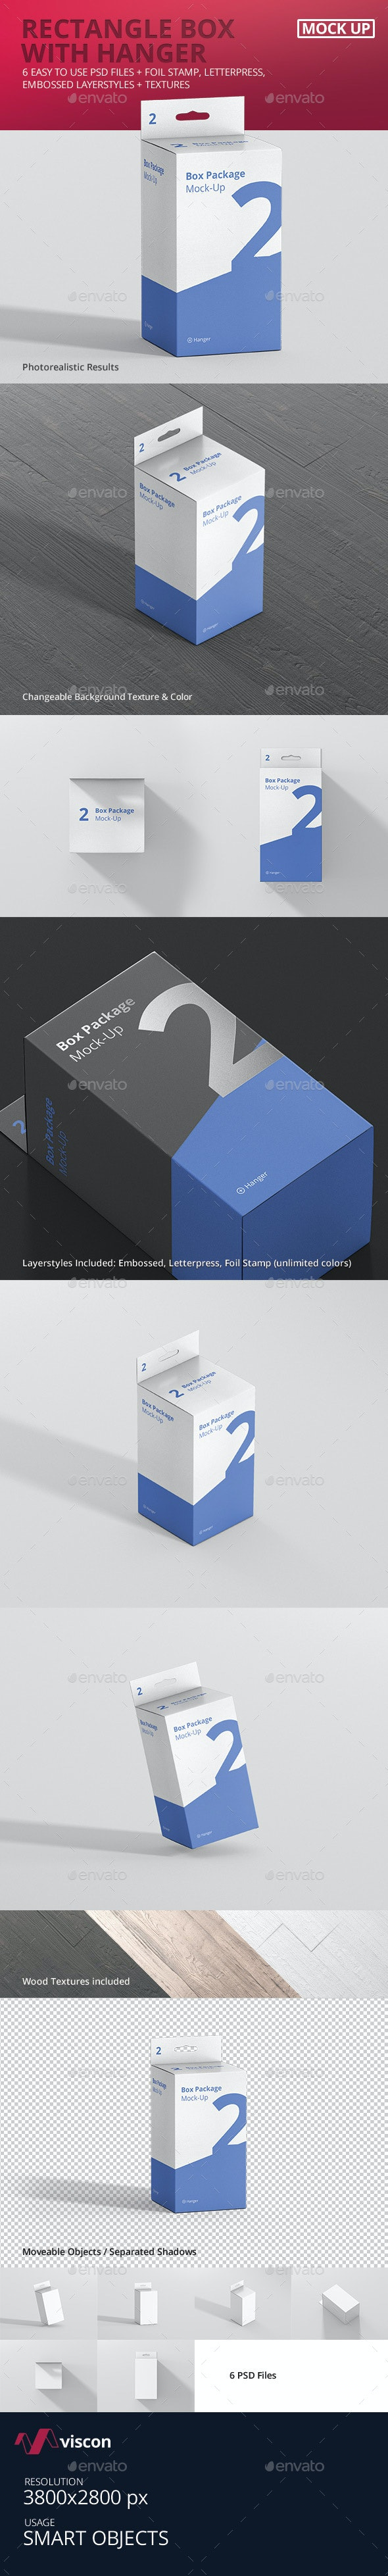 Package Box Mockup - Rectangle with Hanger - Miscellaneous Packaging